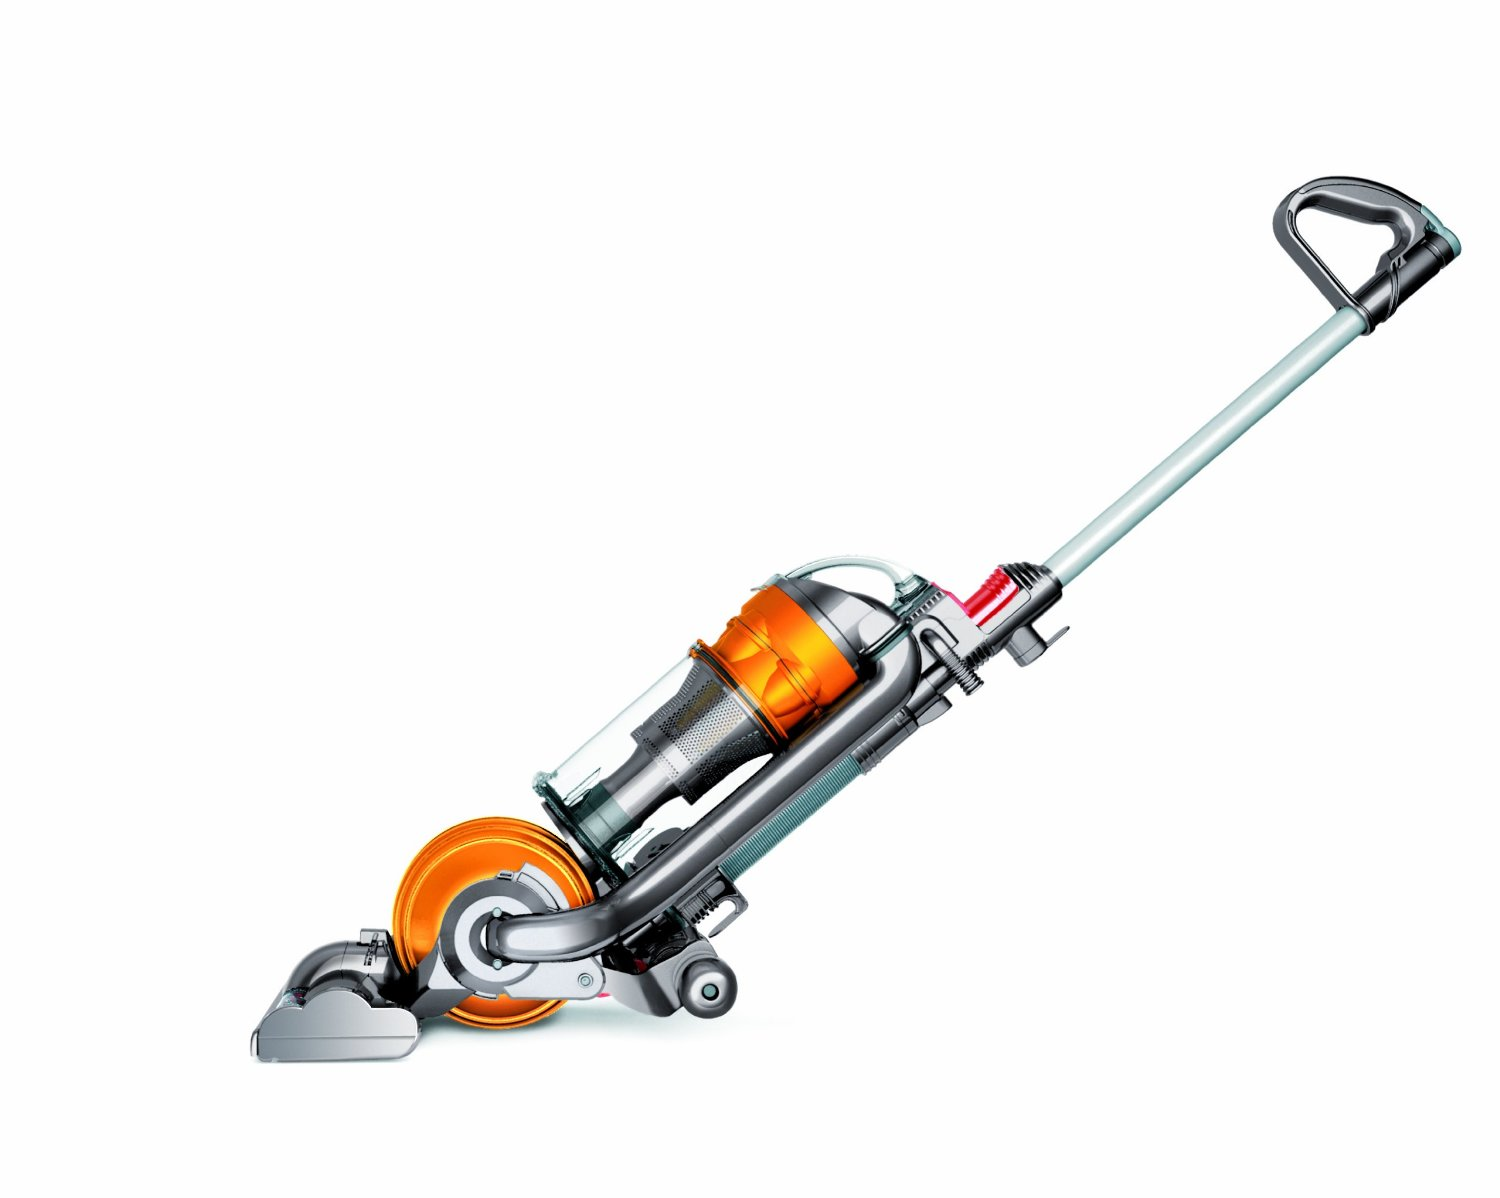 Dyson dc24 upright vacuum cleaner review budget earth for All floors